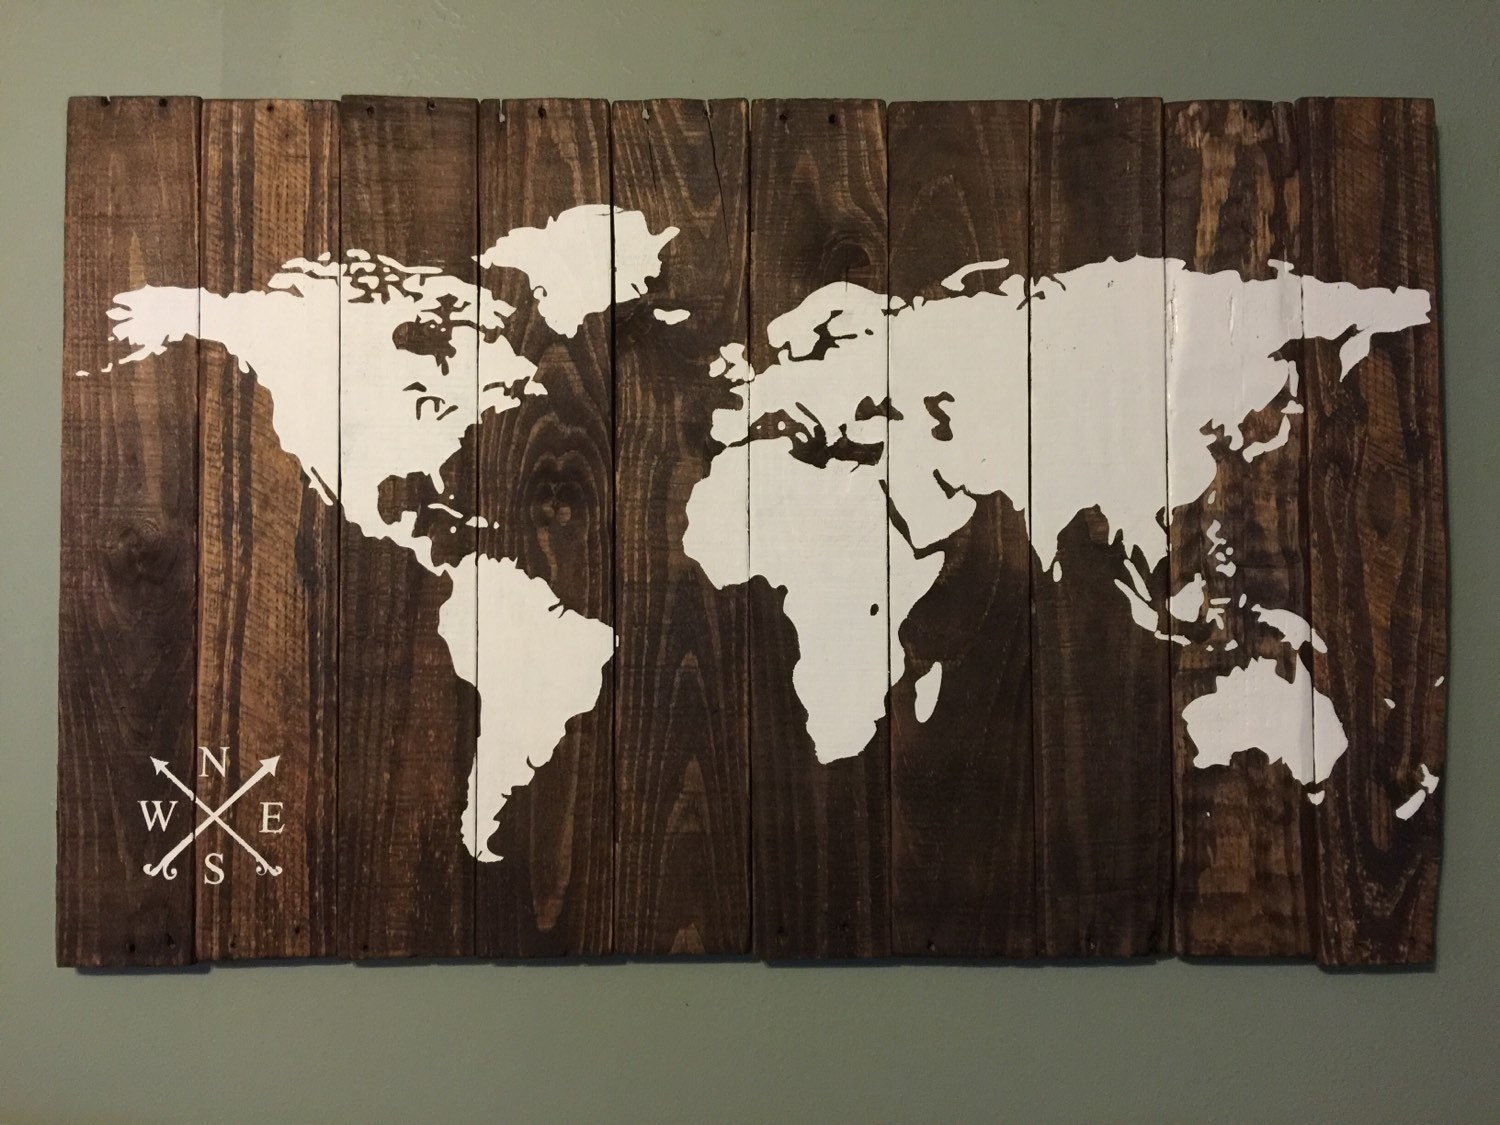 custom world map rustic wood map 28x48 by thetealplank on etsy. Black Bedroom Furniture Sets. Home Design Ideas